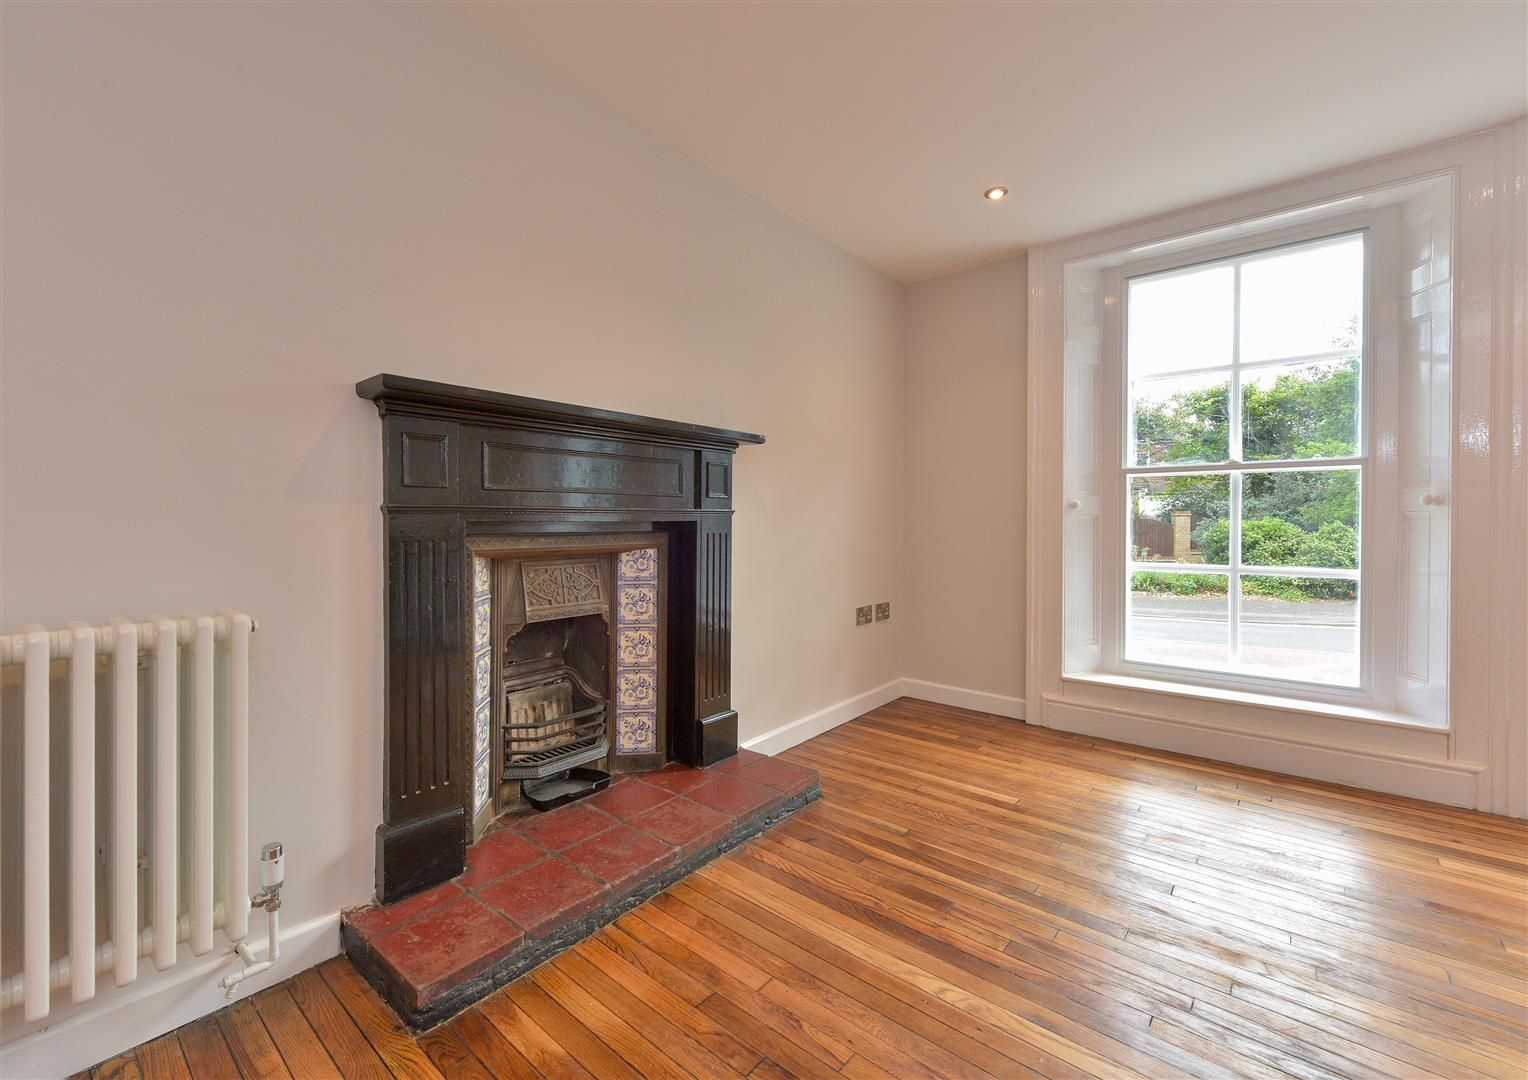 2 bed apartment for sale 6